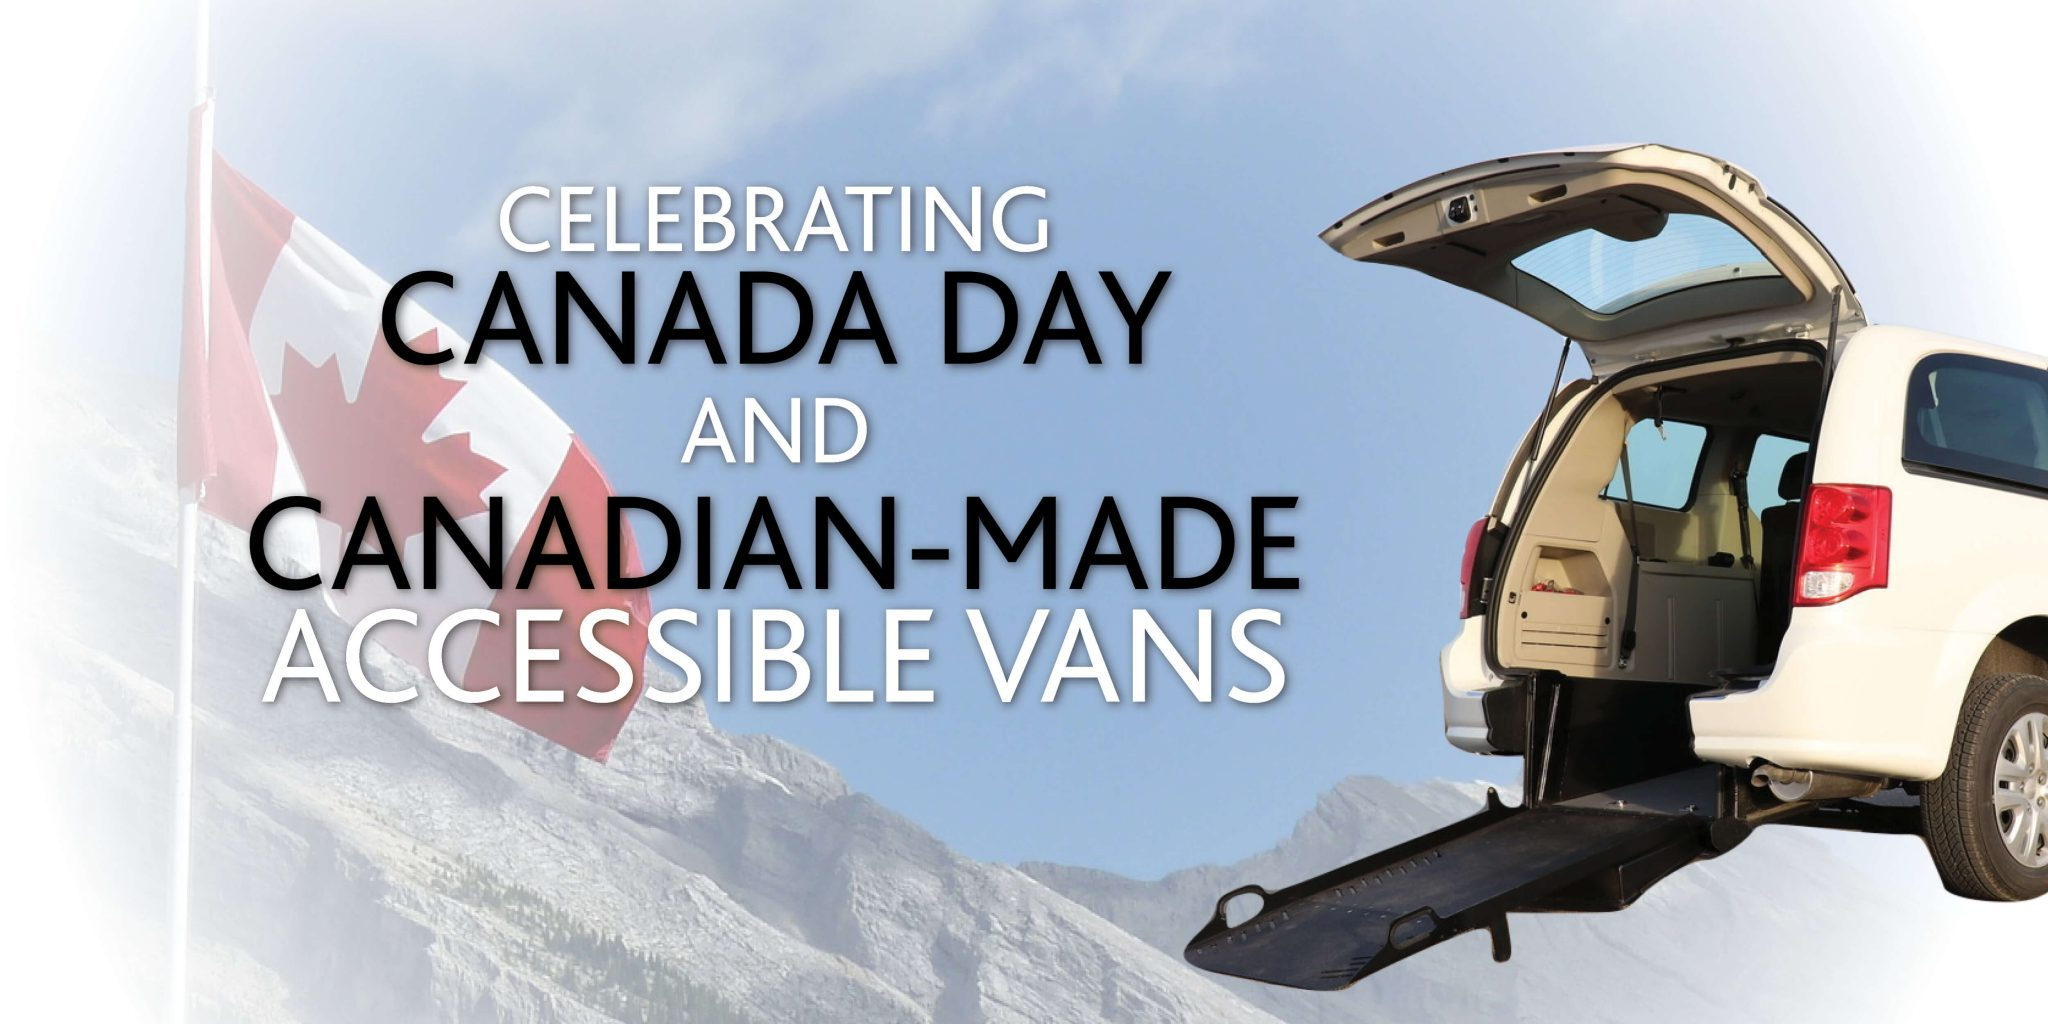 Canadian-made wheelchair accessible vans